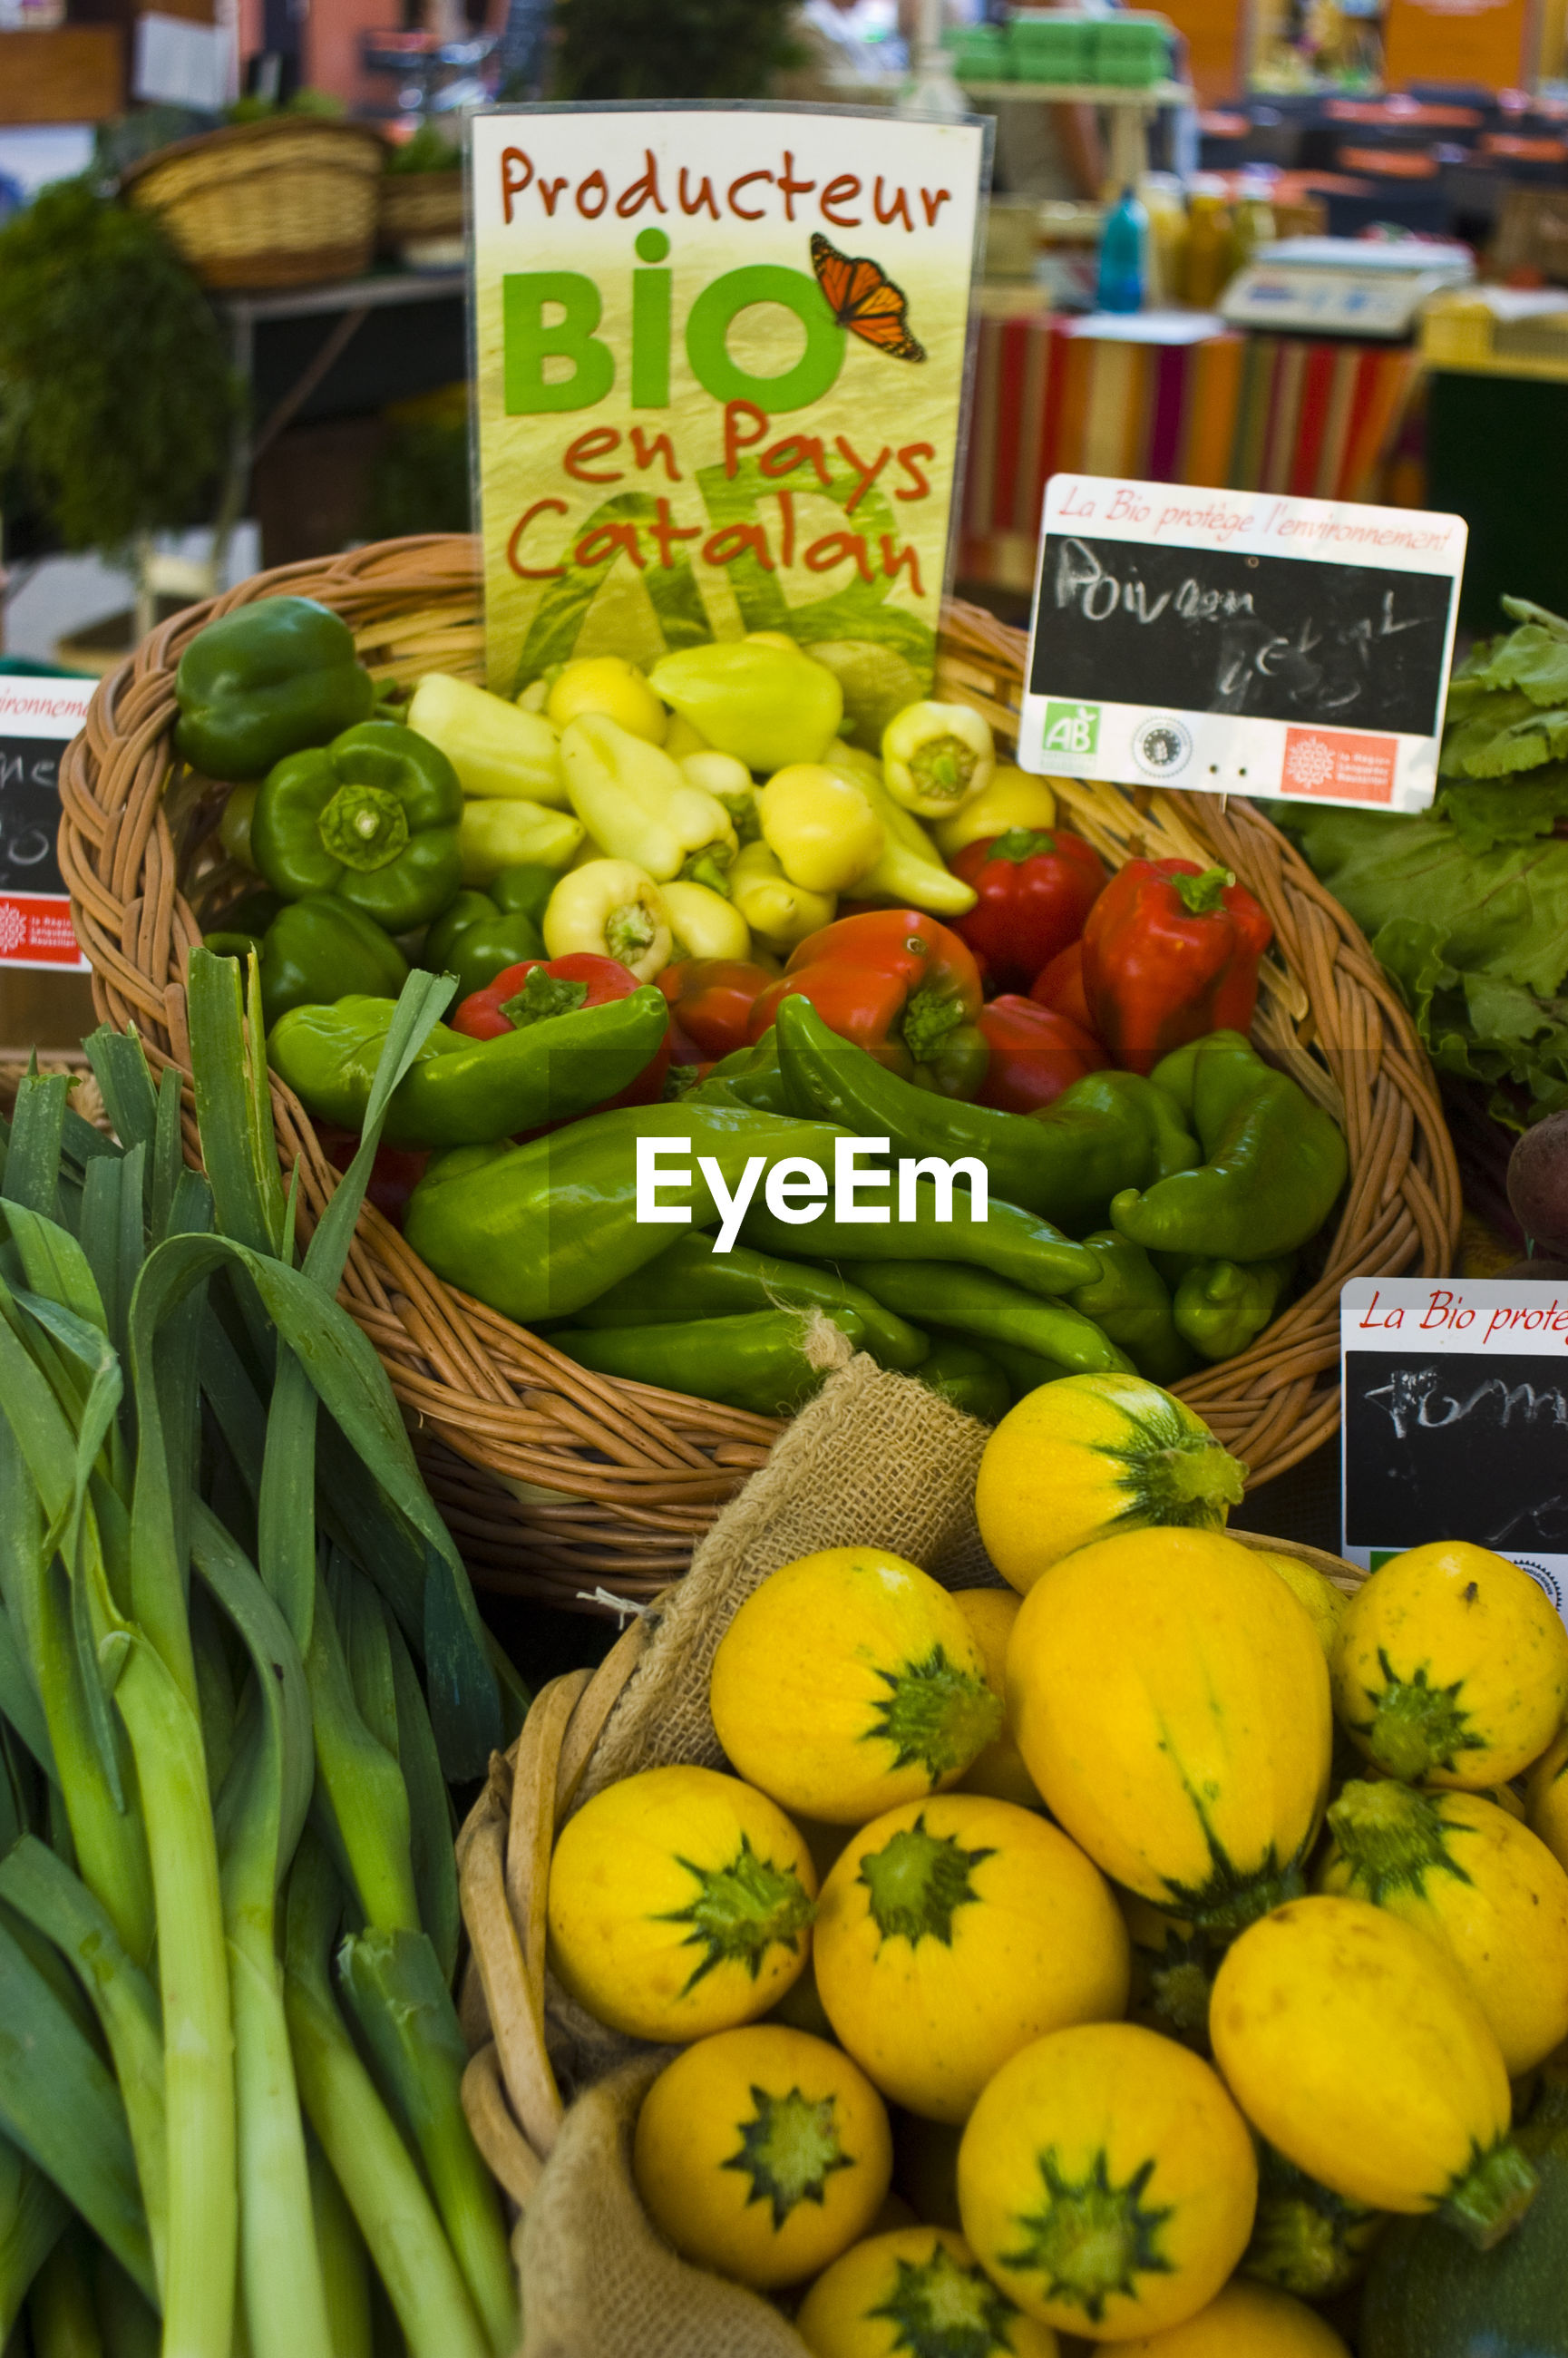 Price tags on vegetables at market stall